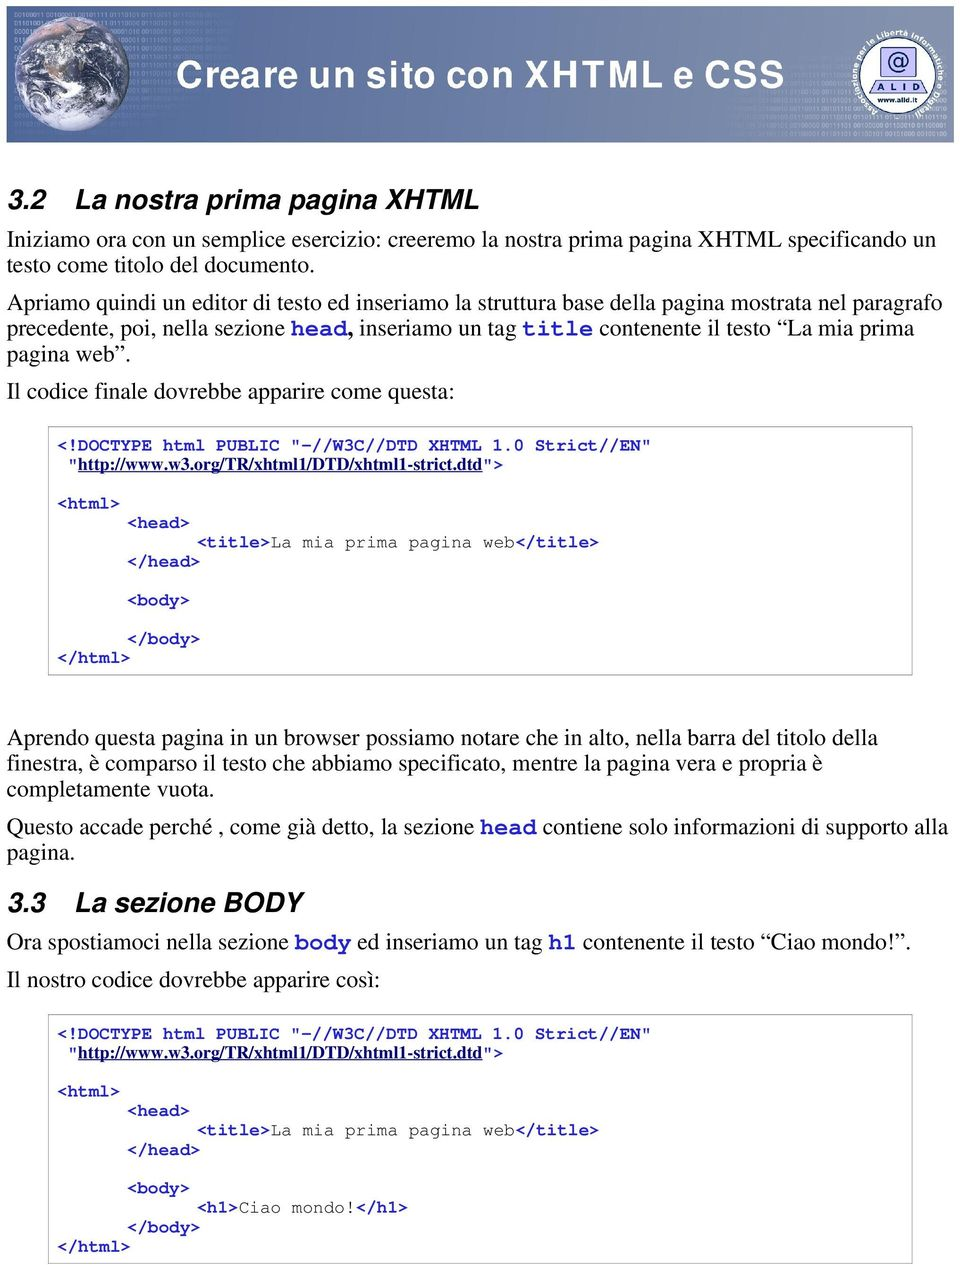 "pagina web. Il codice finale dovrebbe apparire come questa: <!DOCTYPE html PUBLIC ""-//W3C//DTD XHTML 1.0 Strict//EN"" ""http://www.w3.org/tr/xhtml1/dtd/xhtml1-strict."